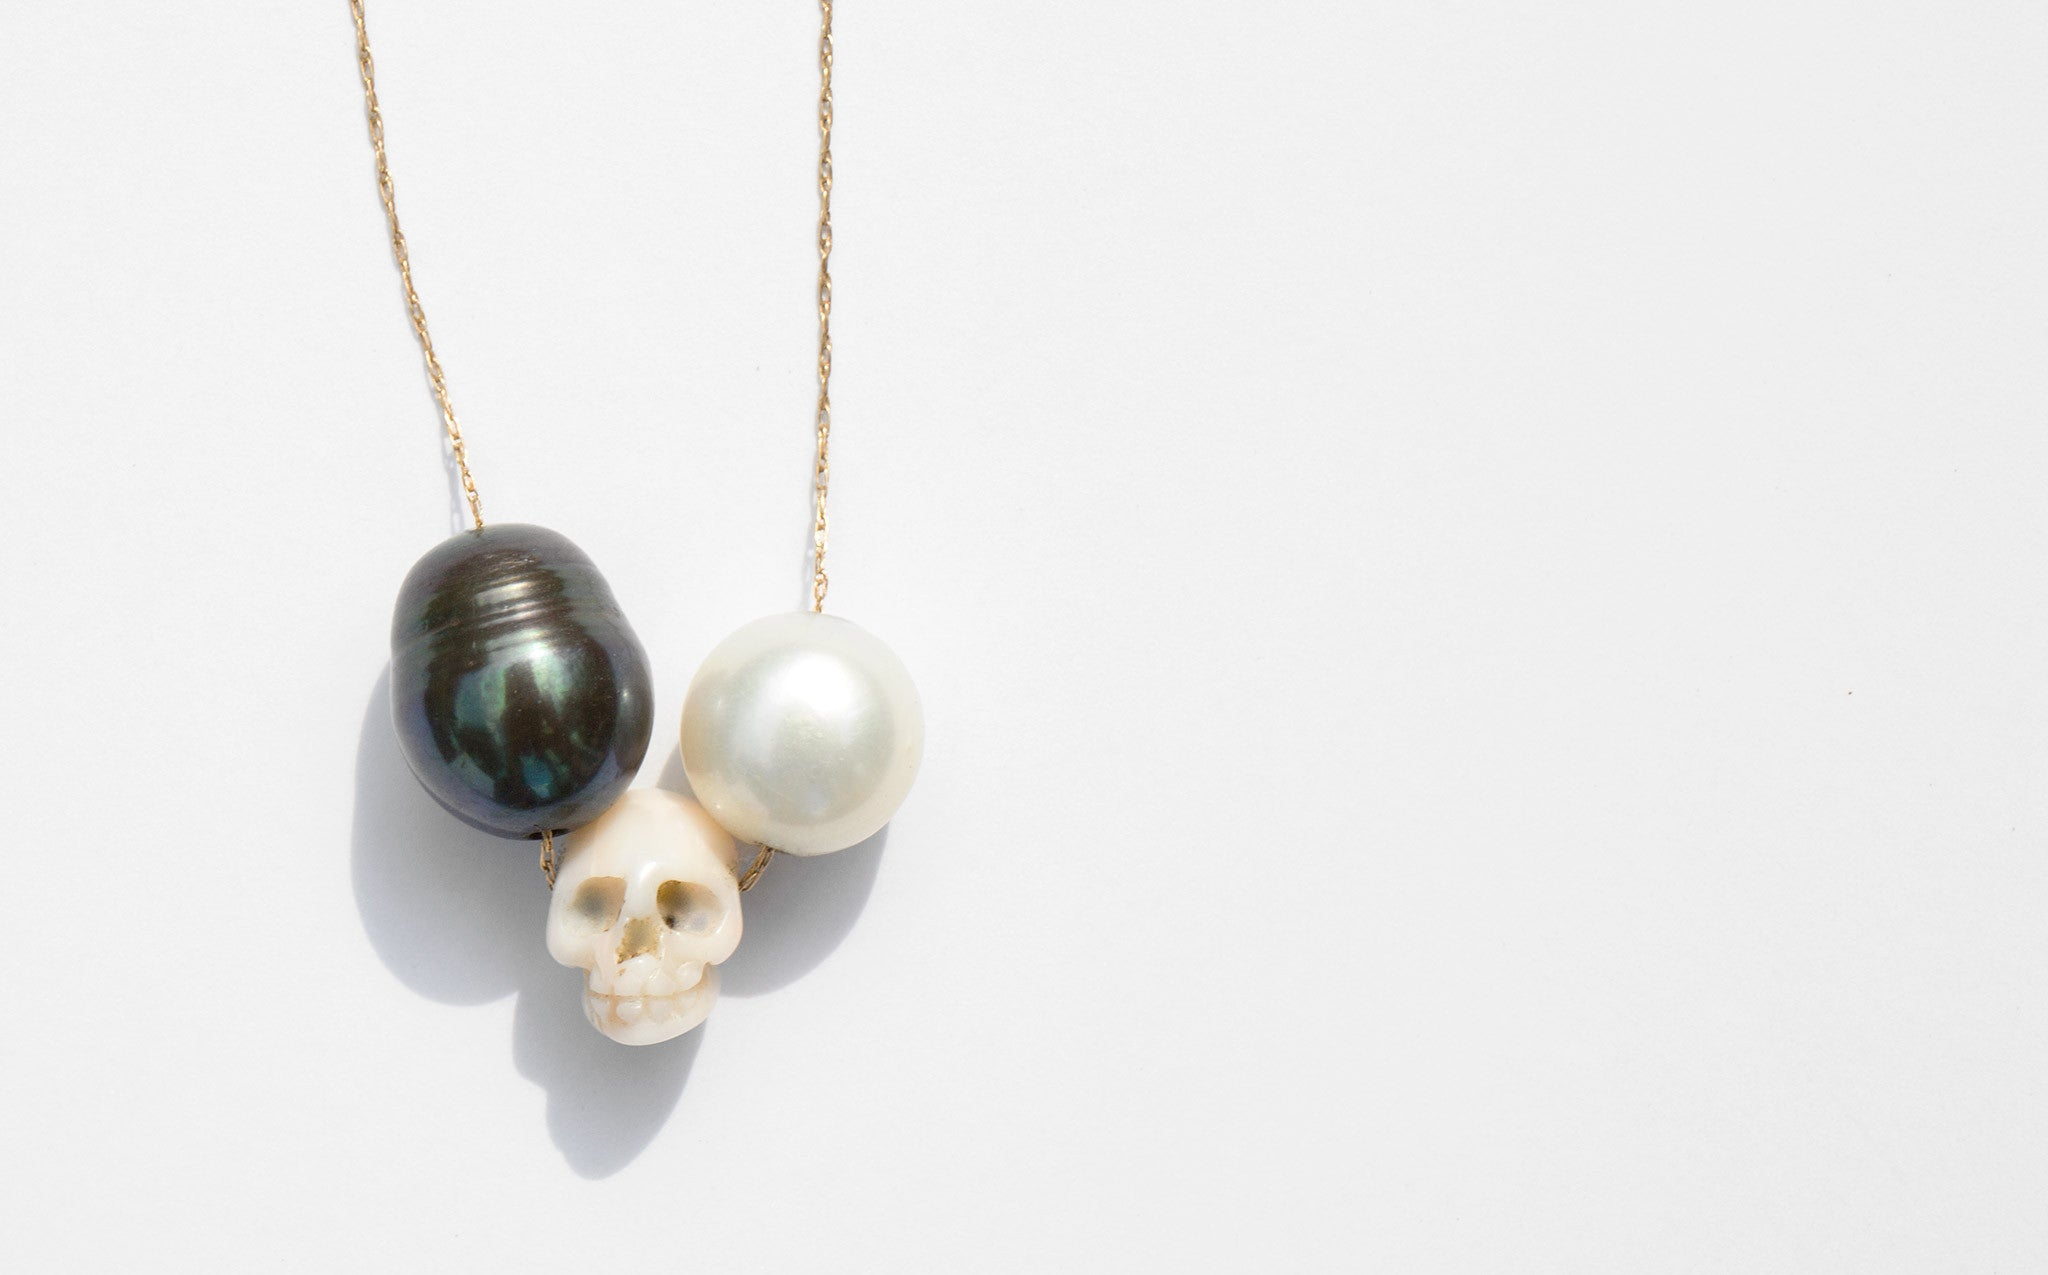 Victorian Skull Necklace